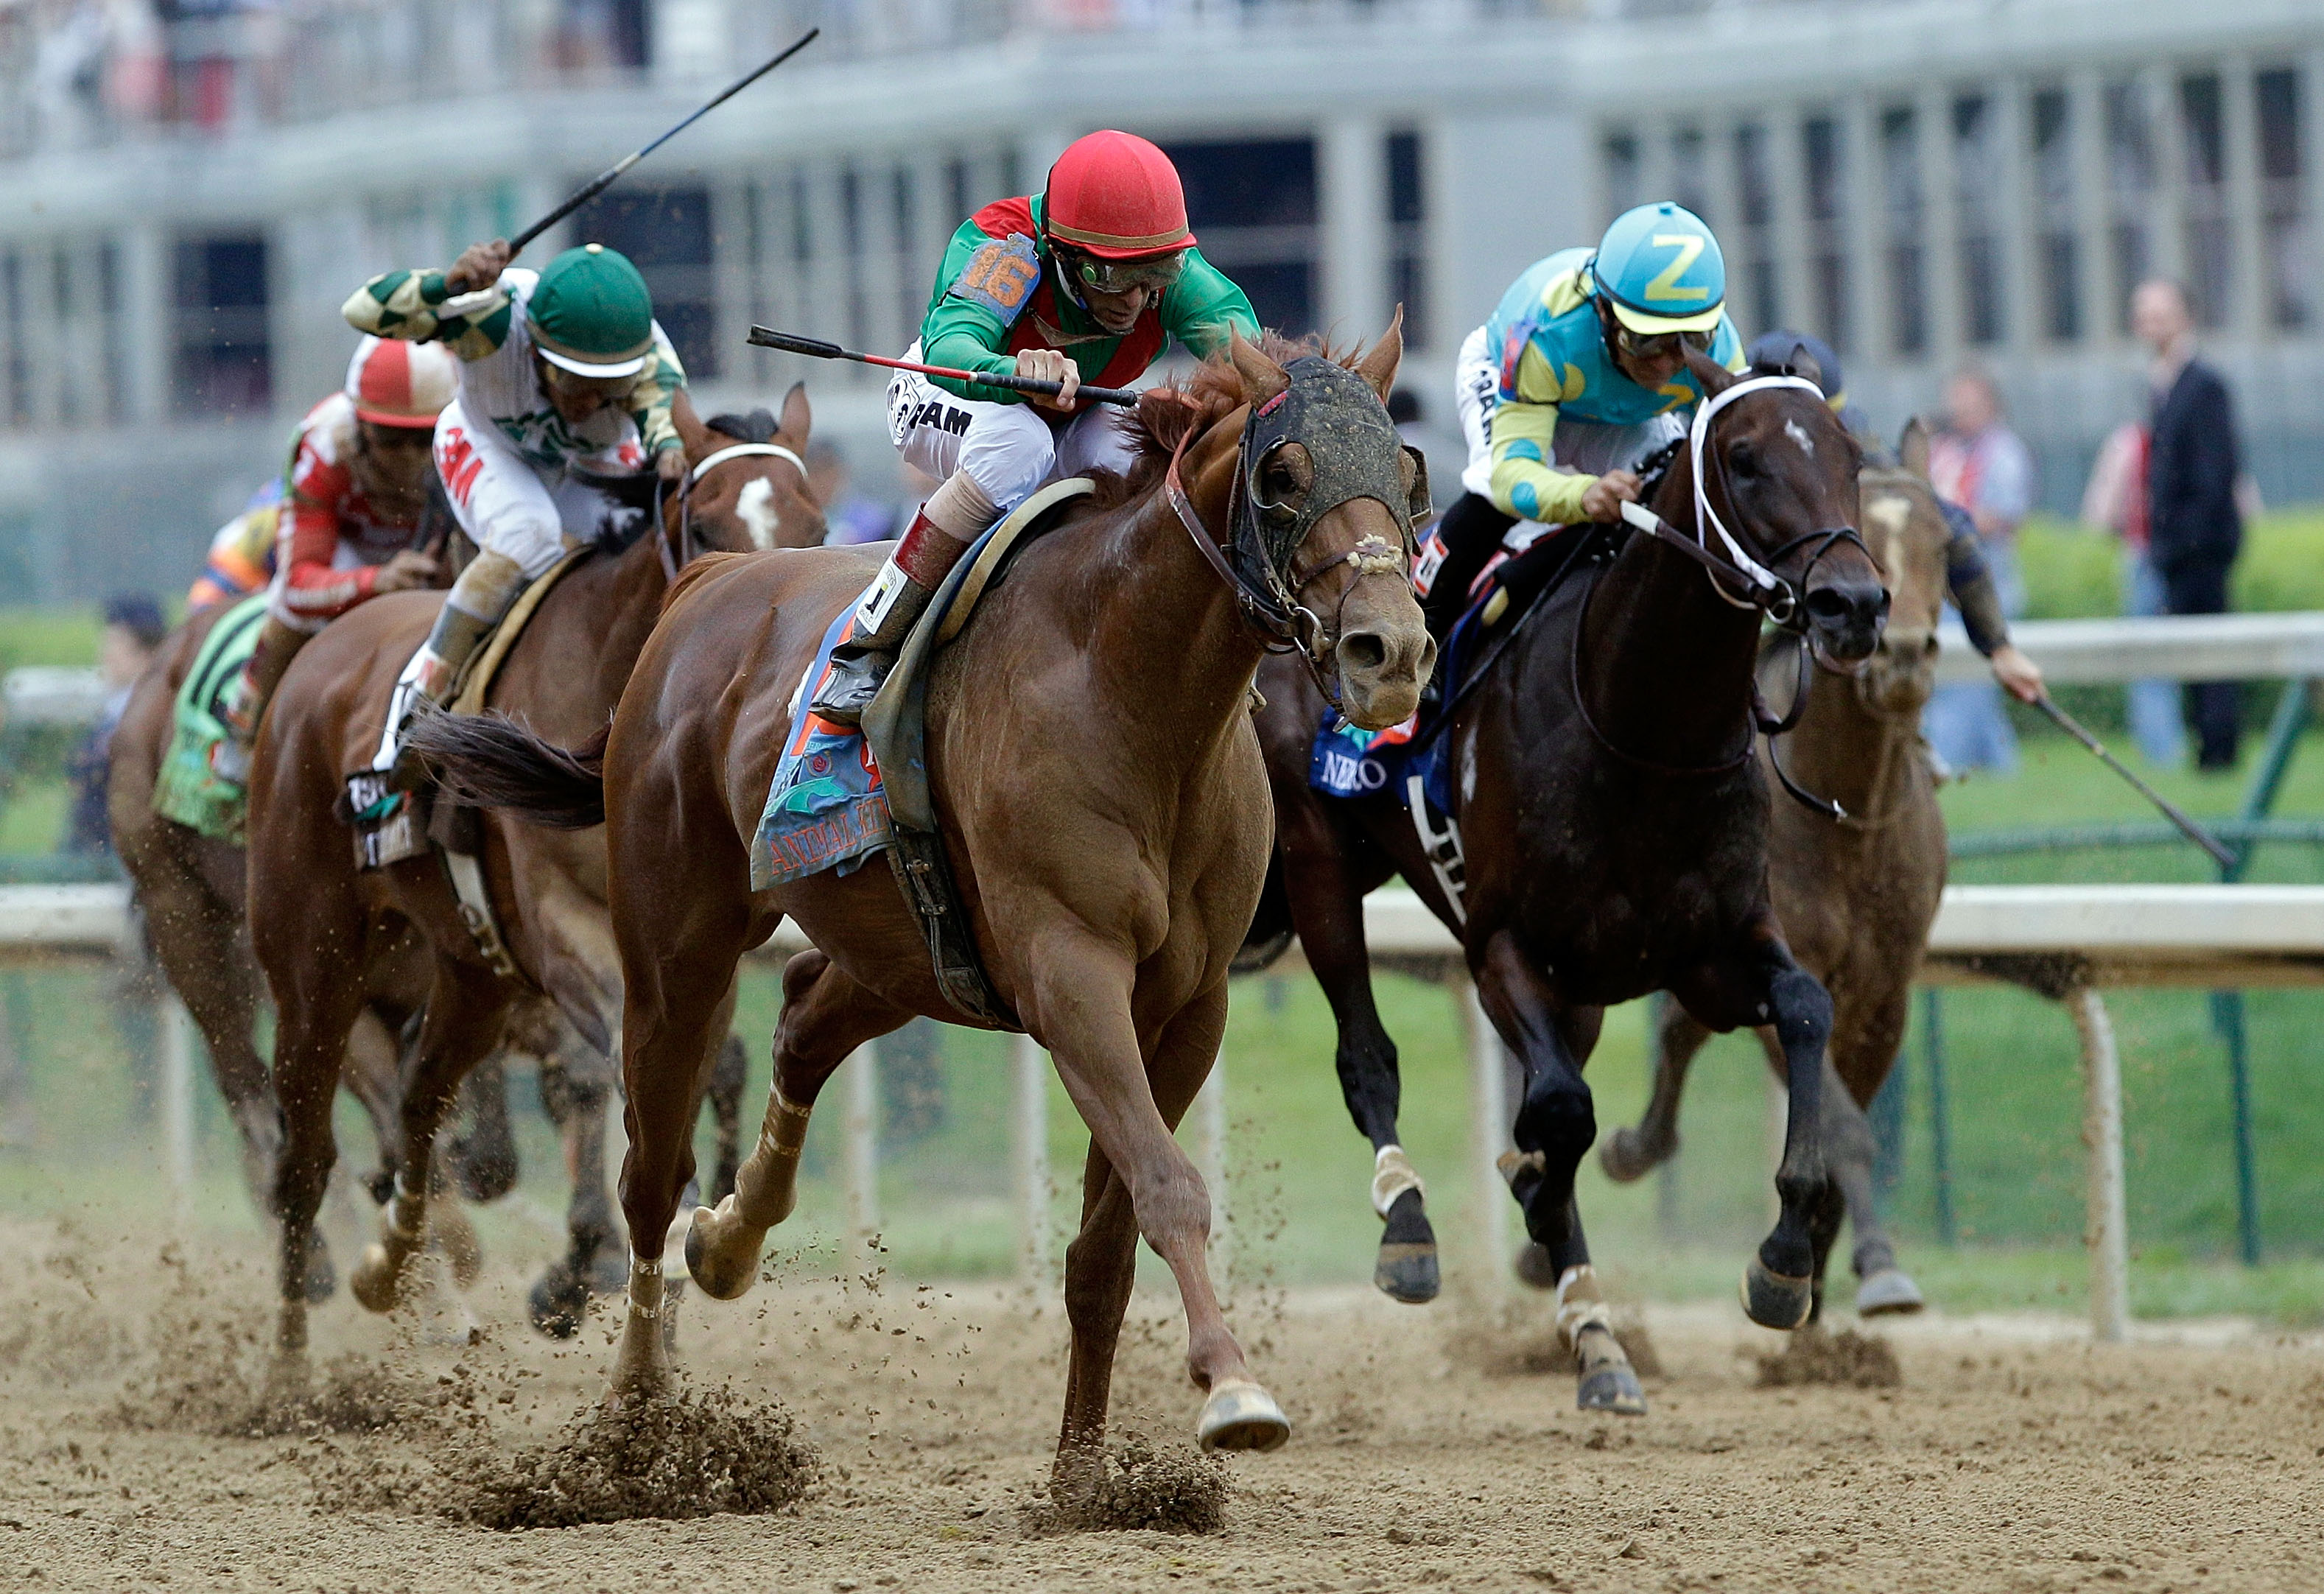 LOUISVILLE, KY - MAY 07:  Jockey John Velazquez, riding Animal Kingdom #16, celebrates leads a pack down the front stretch on his way to winning the 137th Kentucky Derby at Churchill Downs on May 7, 2011 in Louisville, Kentucky.  (Photo by Rob Carr/Getty